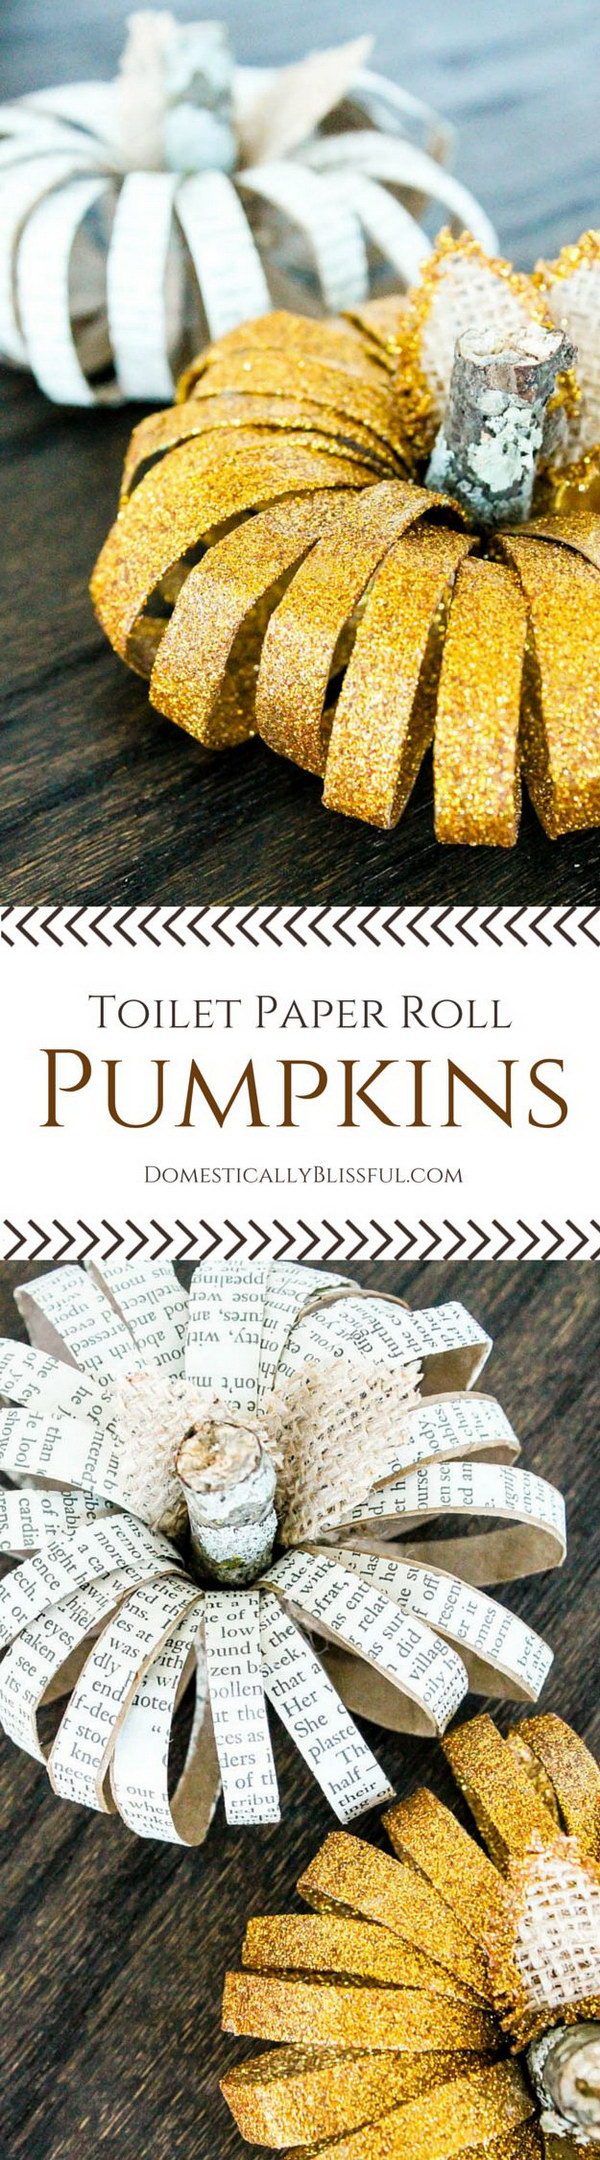 DIY Toilet Paper Roll Pumpkins